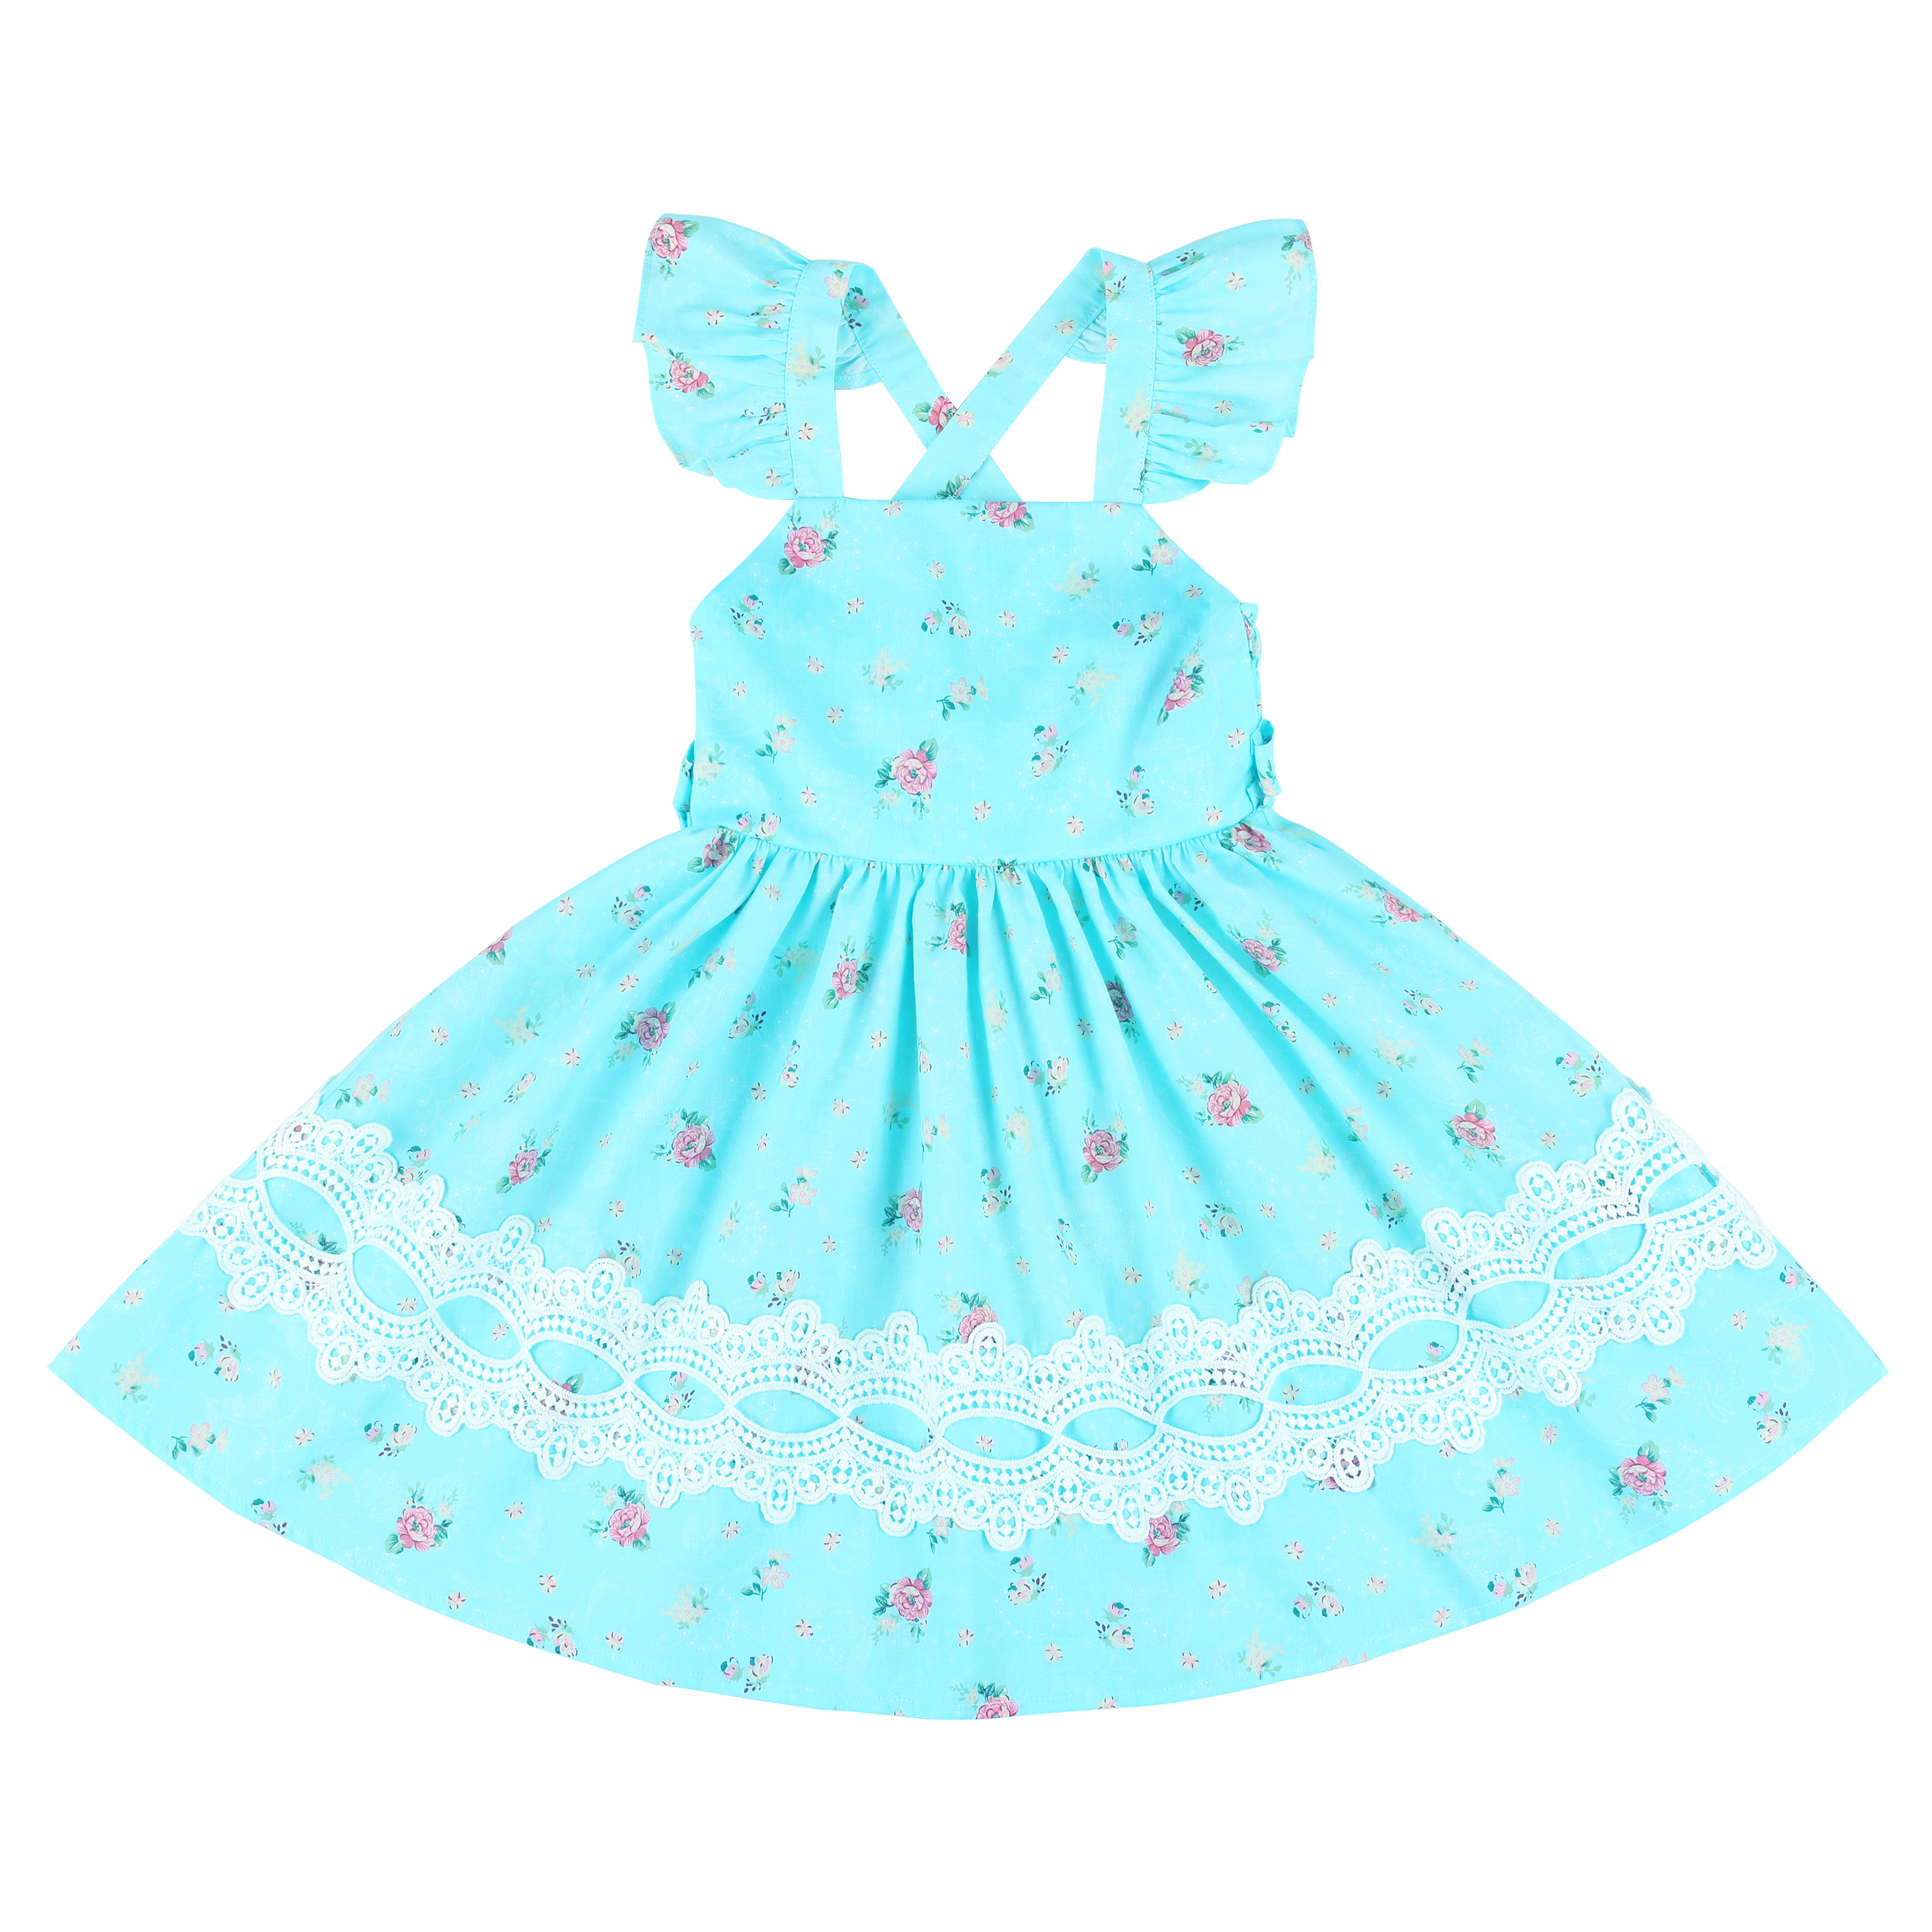 Flofallzique 2020 Brand Baby Girl Dress Vintage Flower Long Tape Design Cute <font><b>Princess</b></font> <font><b>Toddler</b></font> Clothes For Summer Party image